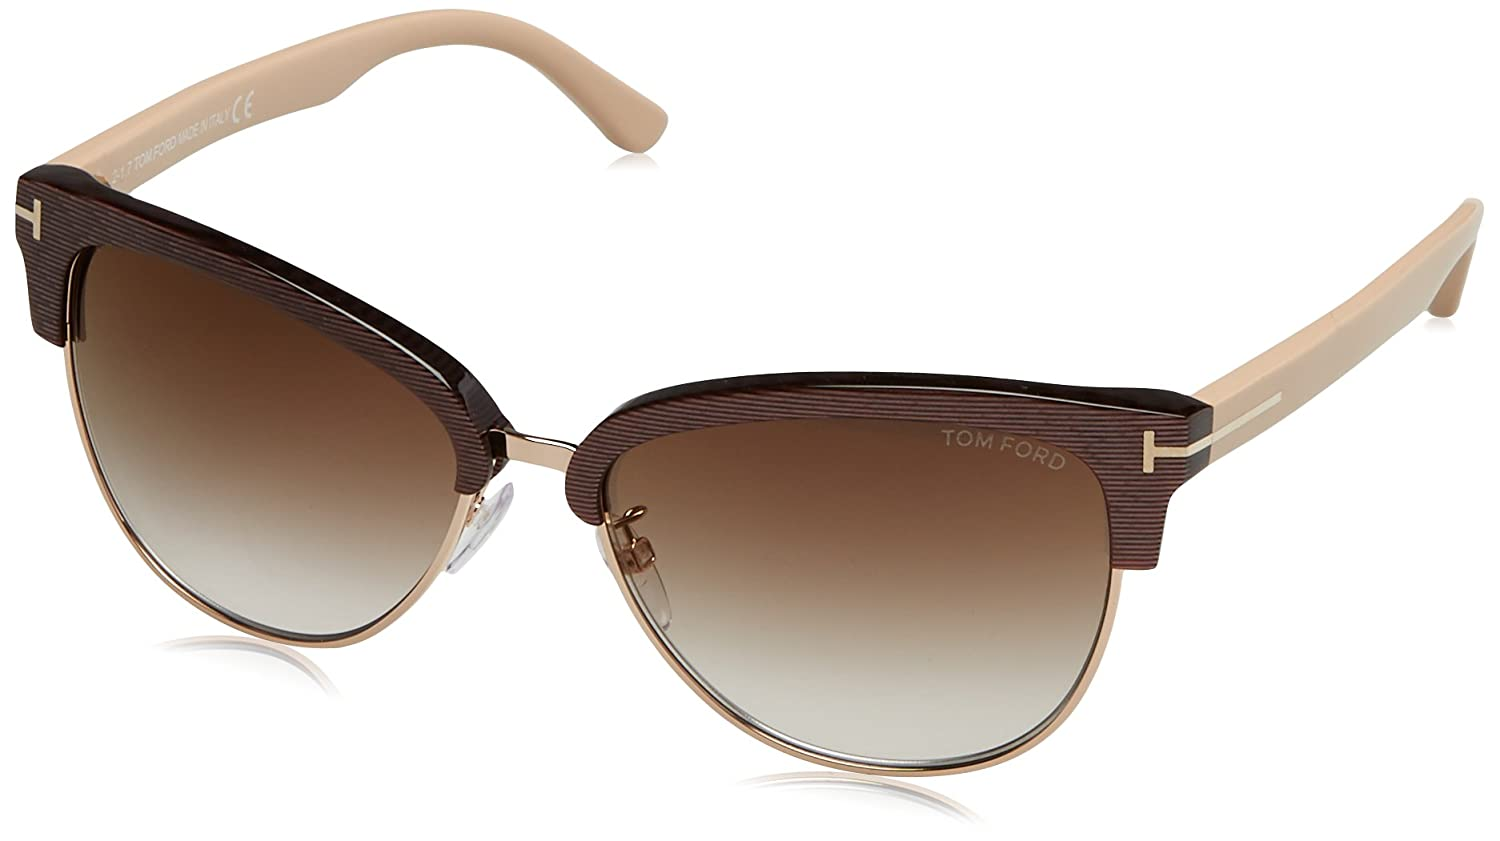 Tom Ford FT0368 01A 59 mm/16 mm aAFQqZ8uDa